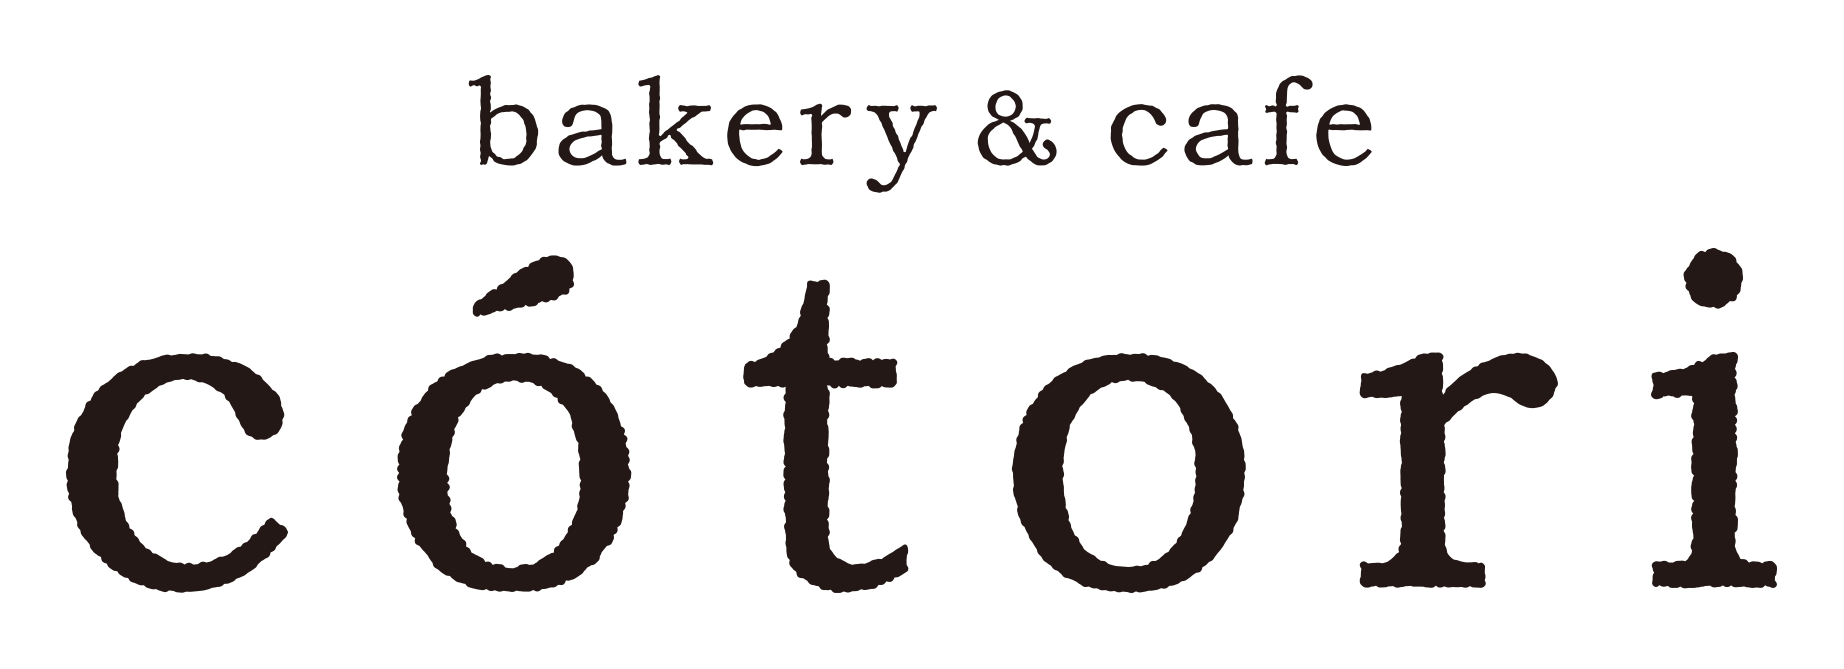 bakery & cafe cotori